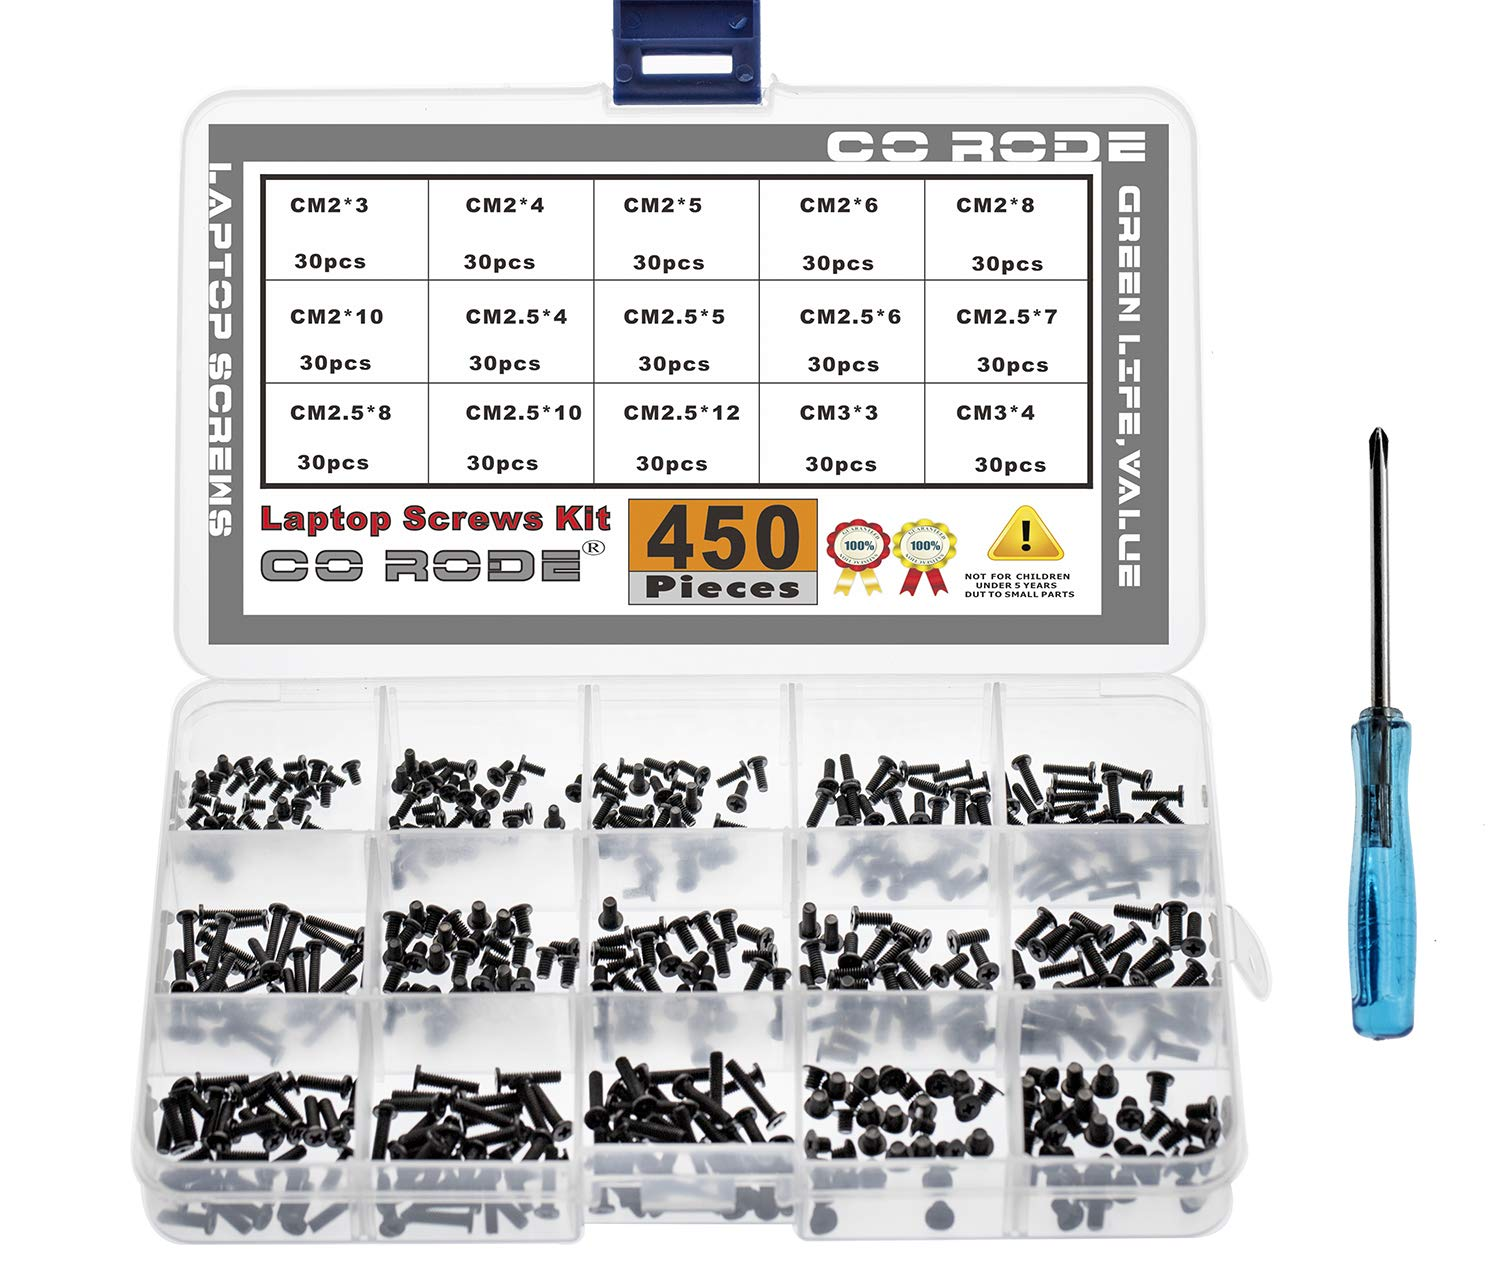 CO-RODE 450pcs M2 M2.5 M3 Laptop Computer Screws Kit Set for SSD IBM HP Dell Lenovo Samsung Sony Toshiba Gateway Acer Hard Drive SATA, (15-Size)